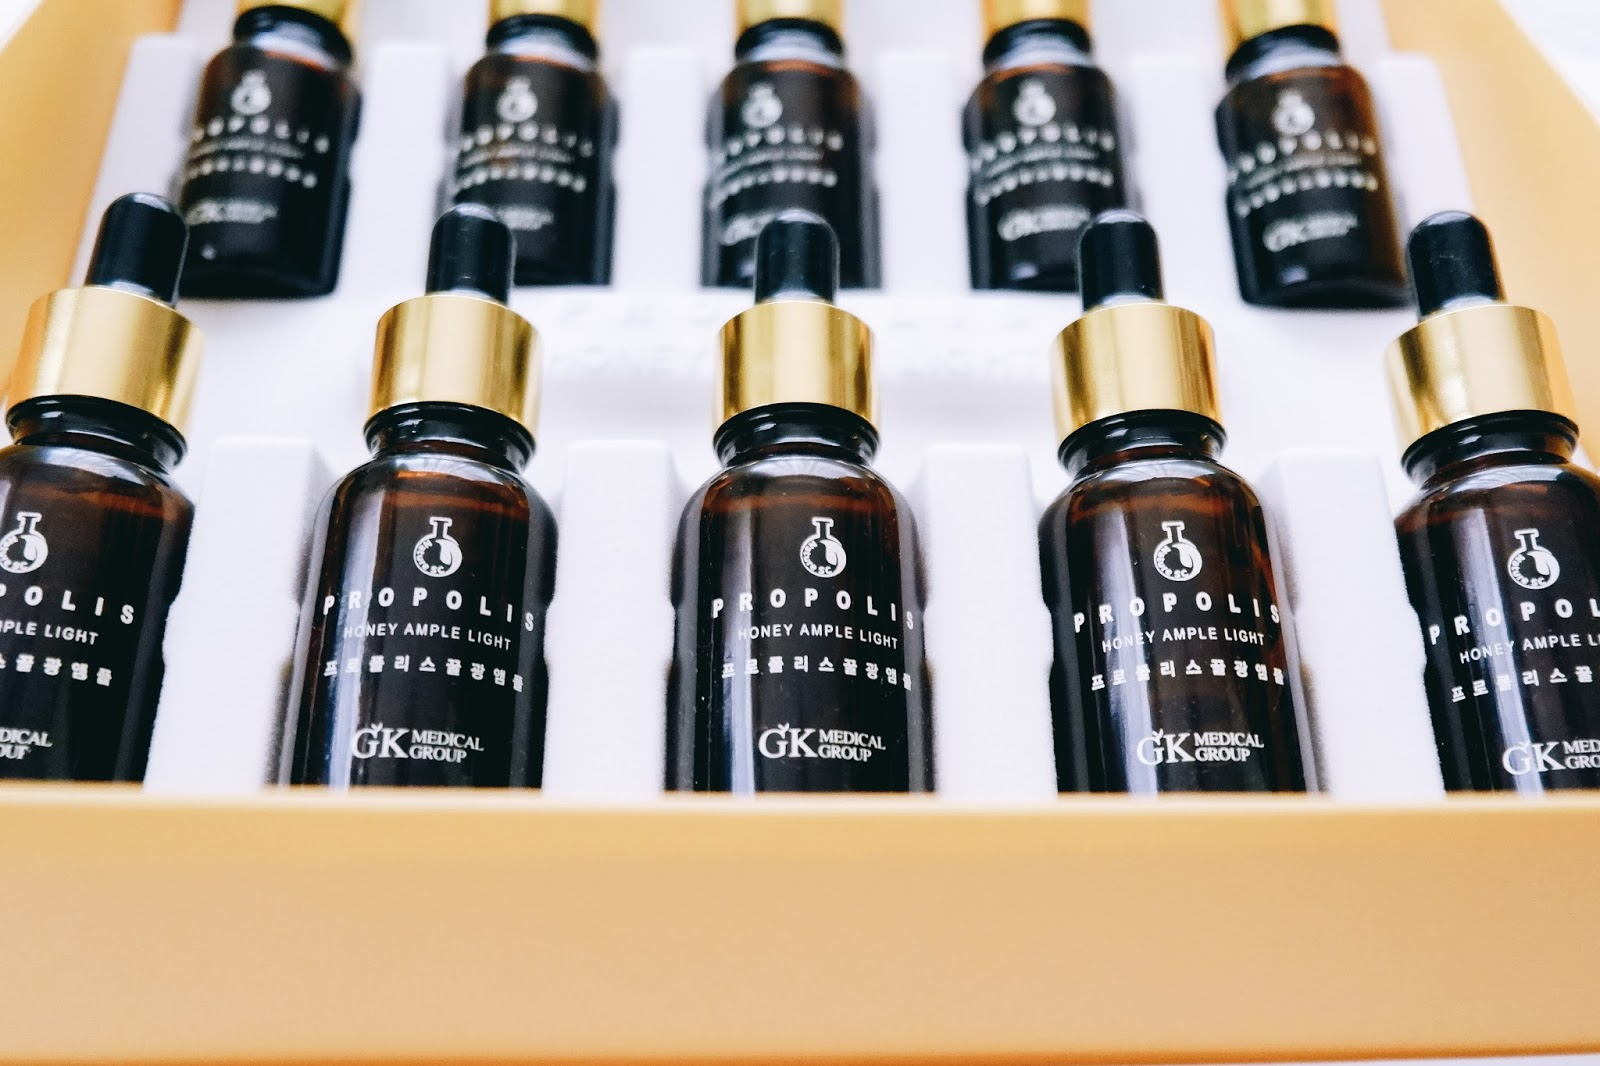 How The Propolis Honey Ampule Light Improved My Skin Modern Gold Evens Out Your Tone Possible Whitening Effect